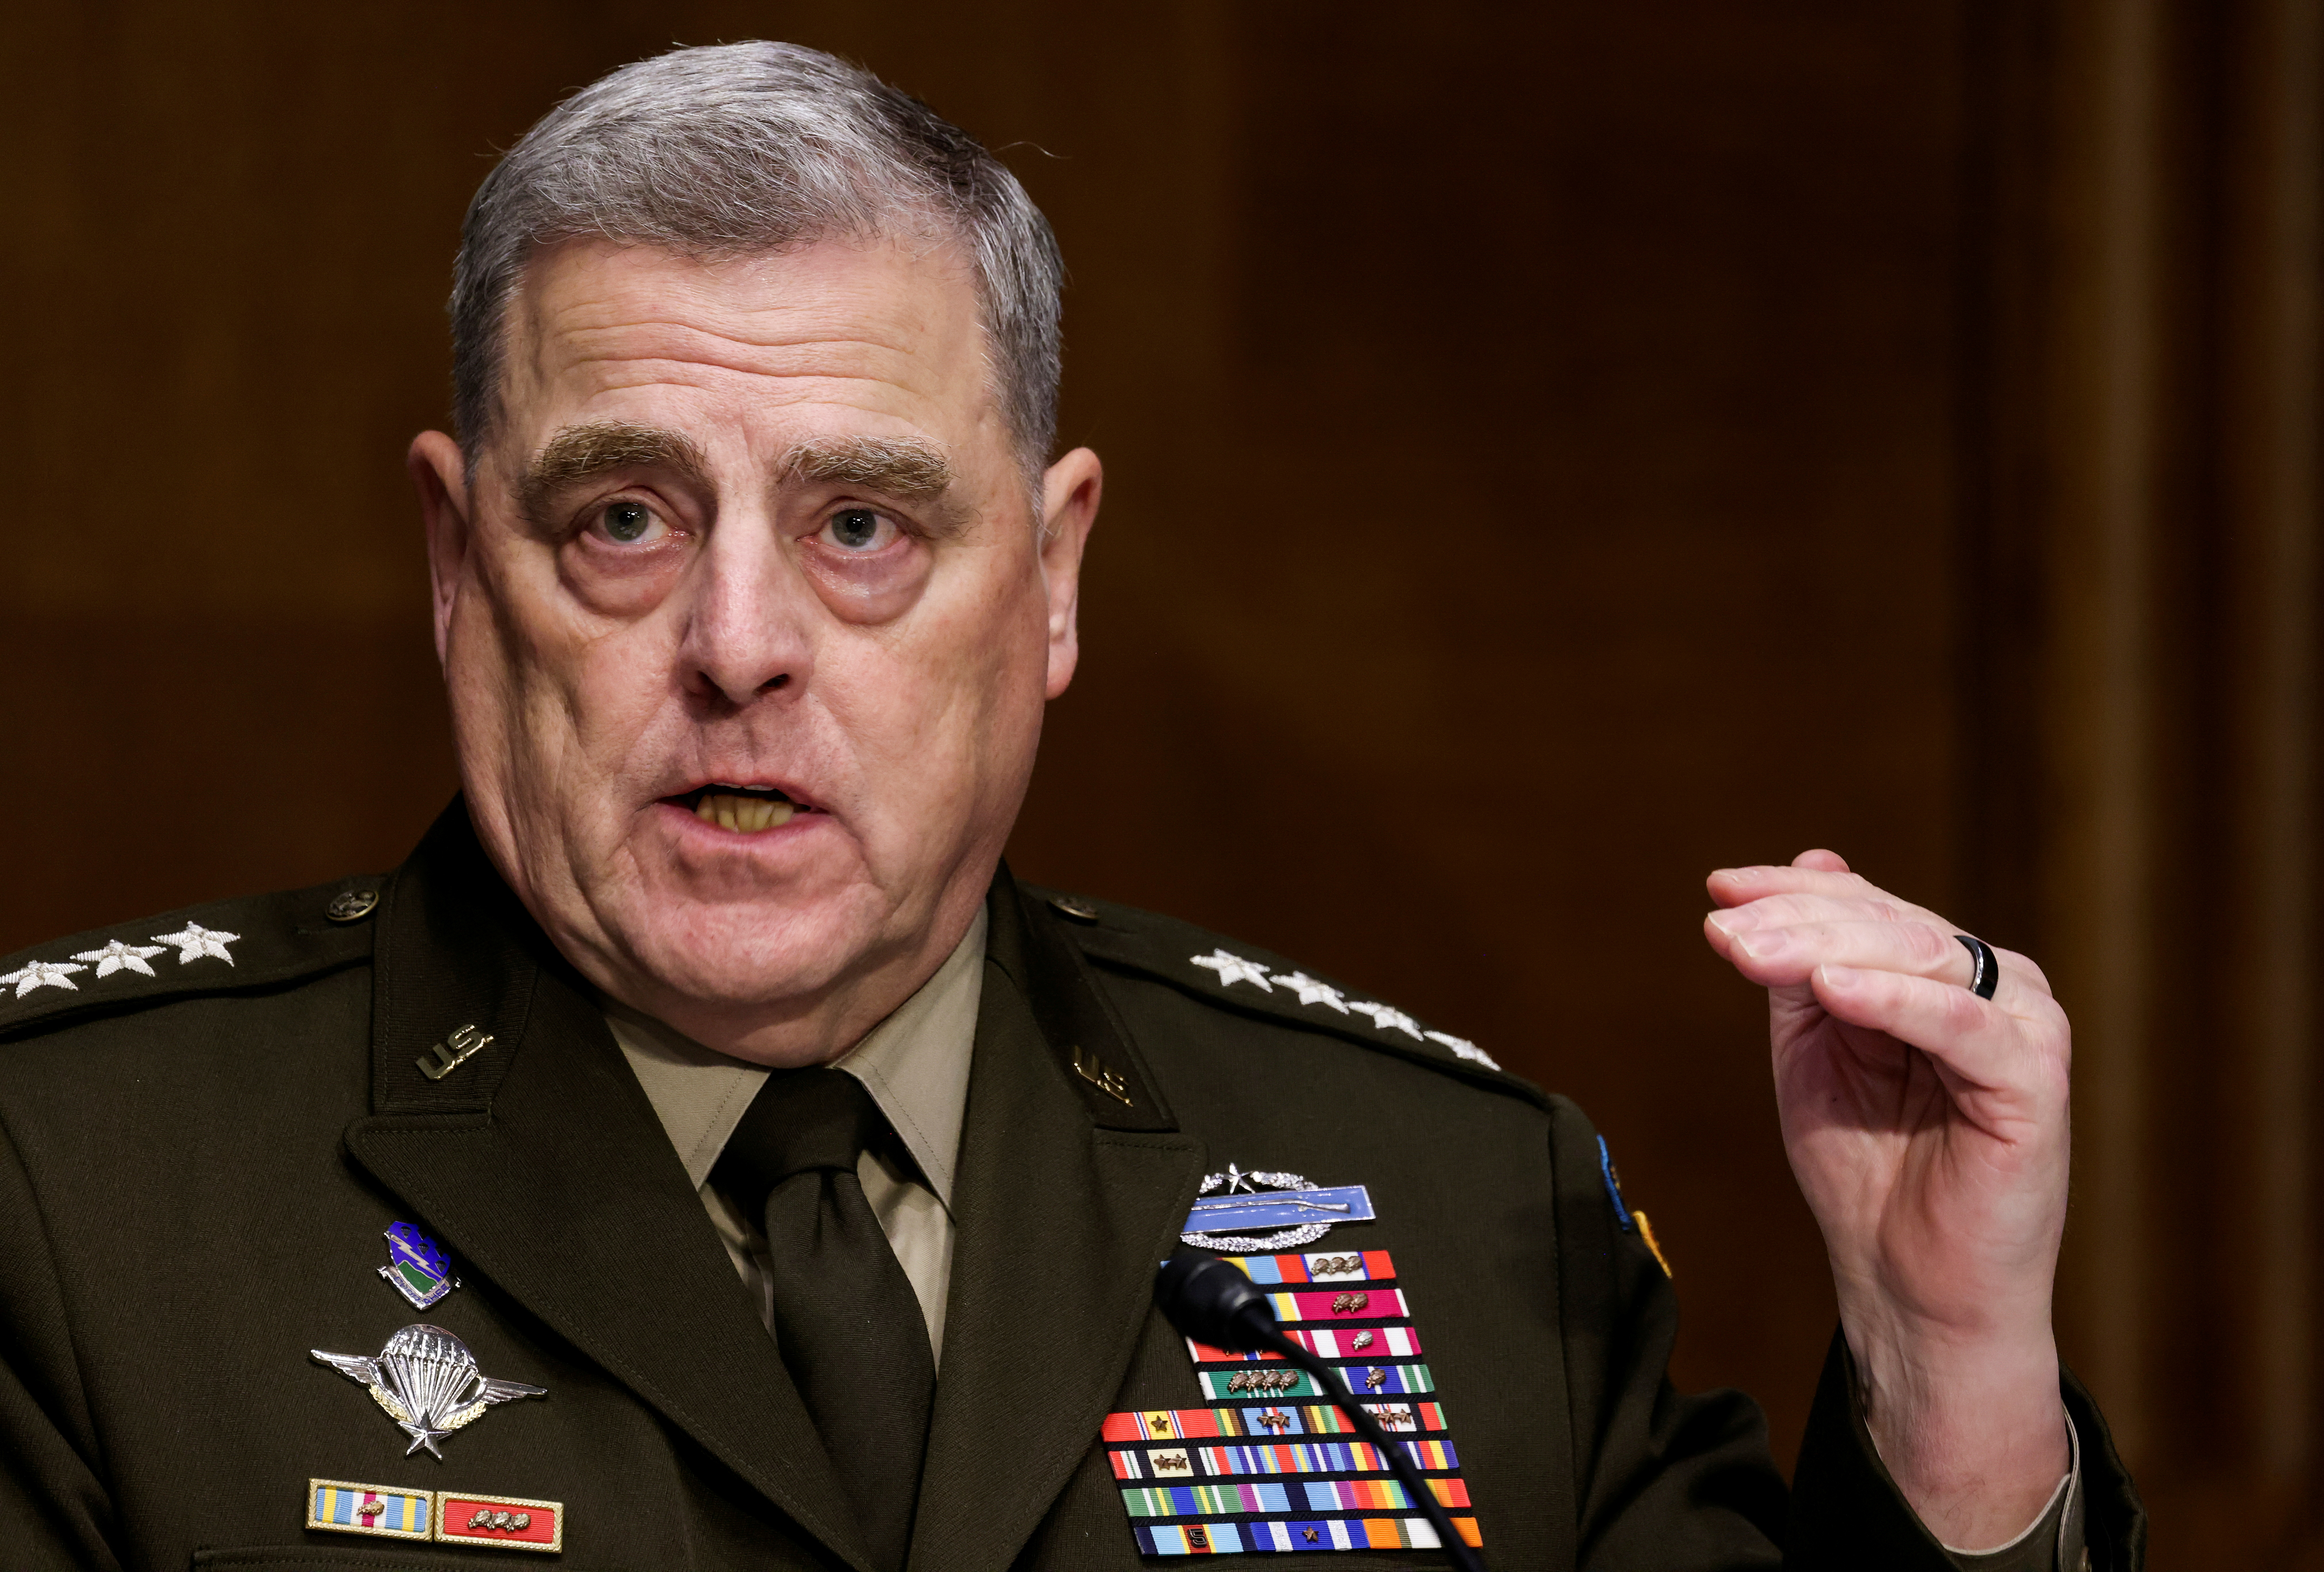 Joint Chiefs of Staff Chair Gen. Mark Milley testifies on the defense department?s budget request during a Senate Appropriations Committee hearing on Capitol Hill in Washington, U.S., June 17, 2021. REUTERS/Evelyn Hockstein/Pool/File Photo